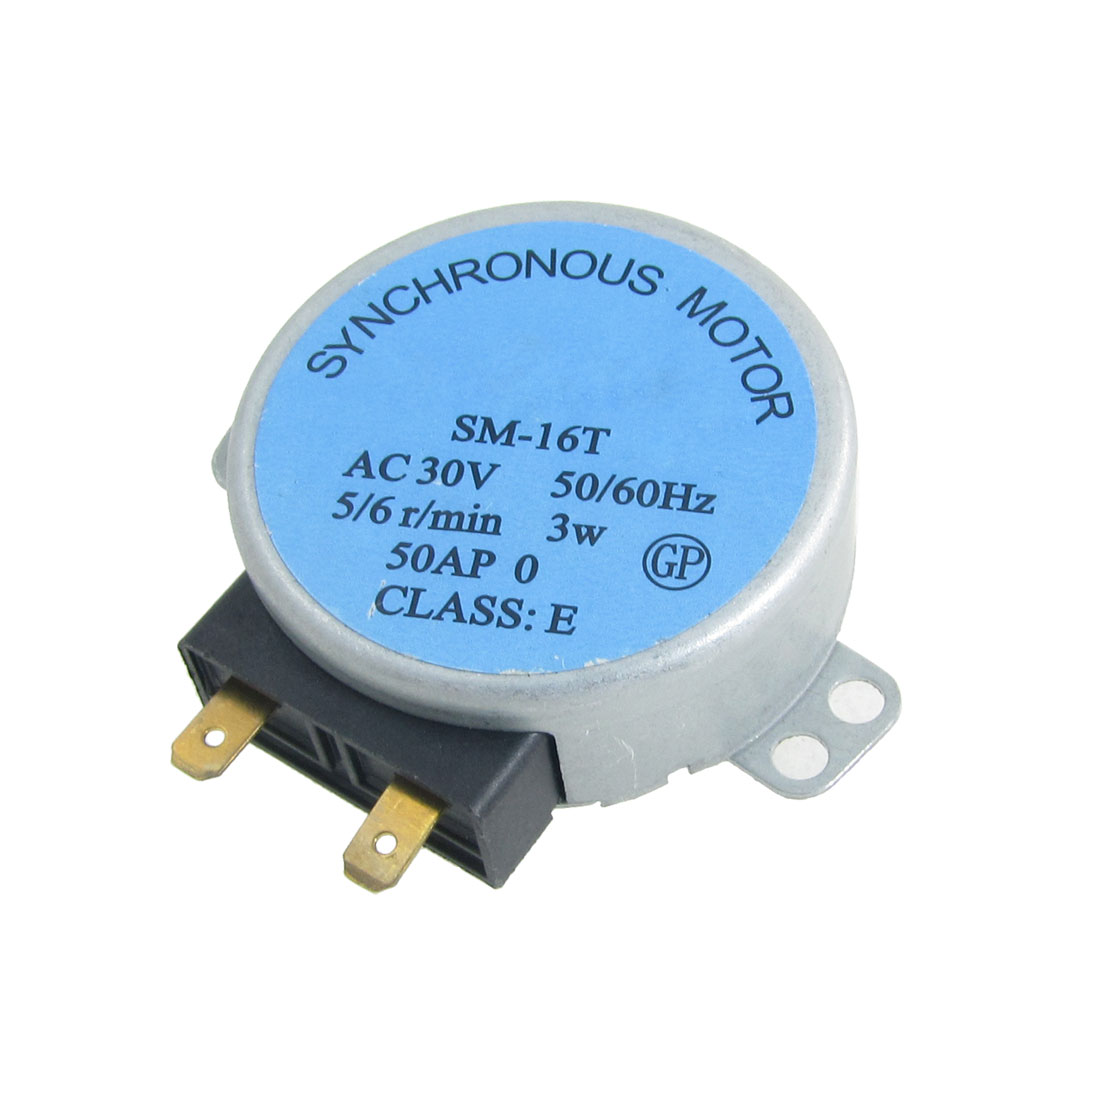 AC 30V 50/60Hz 5/6R/MIN Turntable Synchronous Motor for Microwave Oven